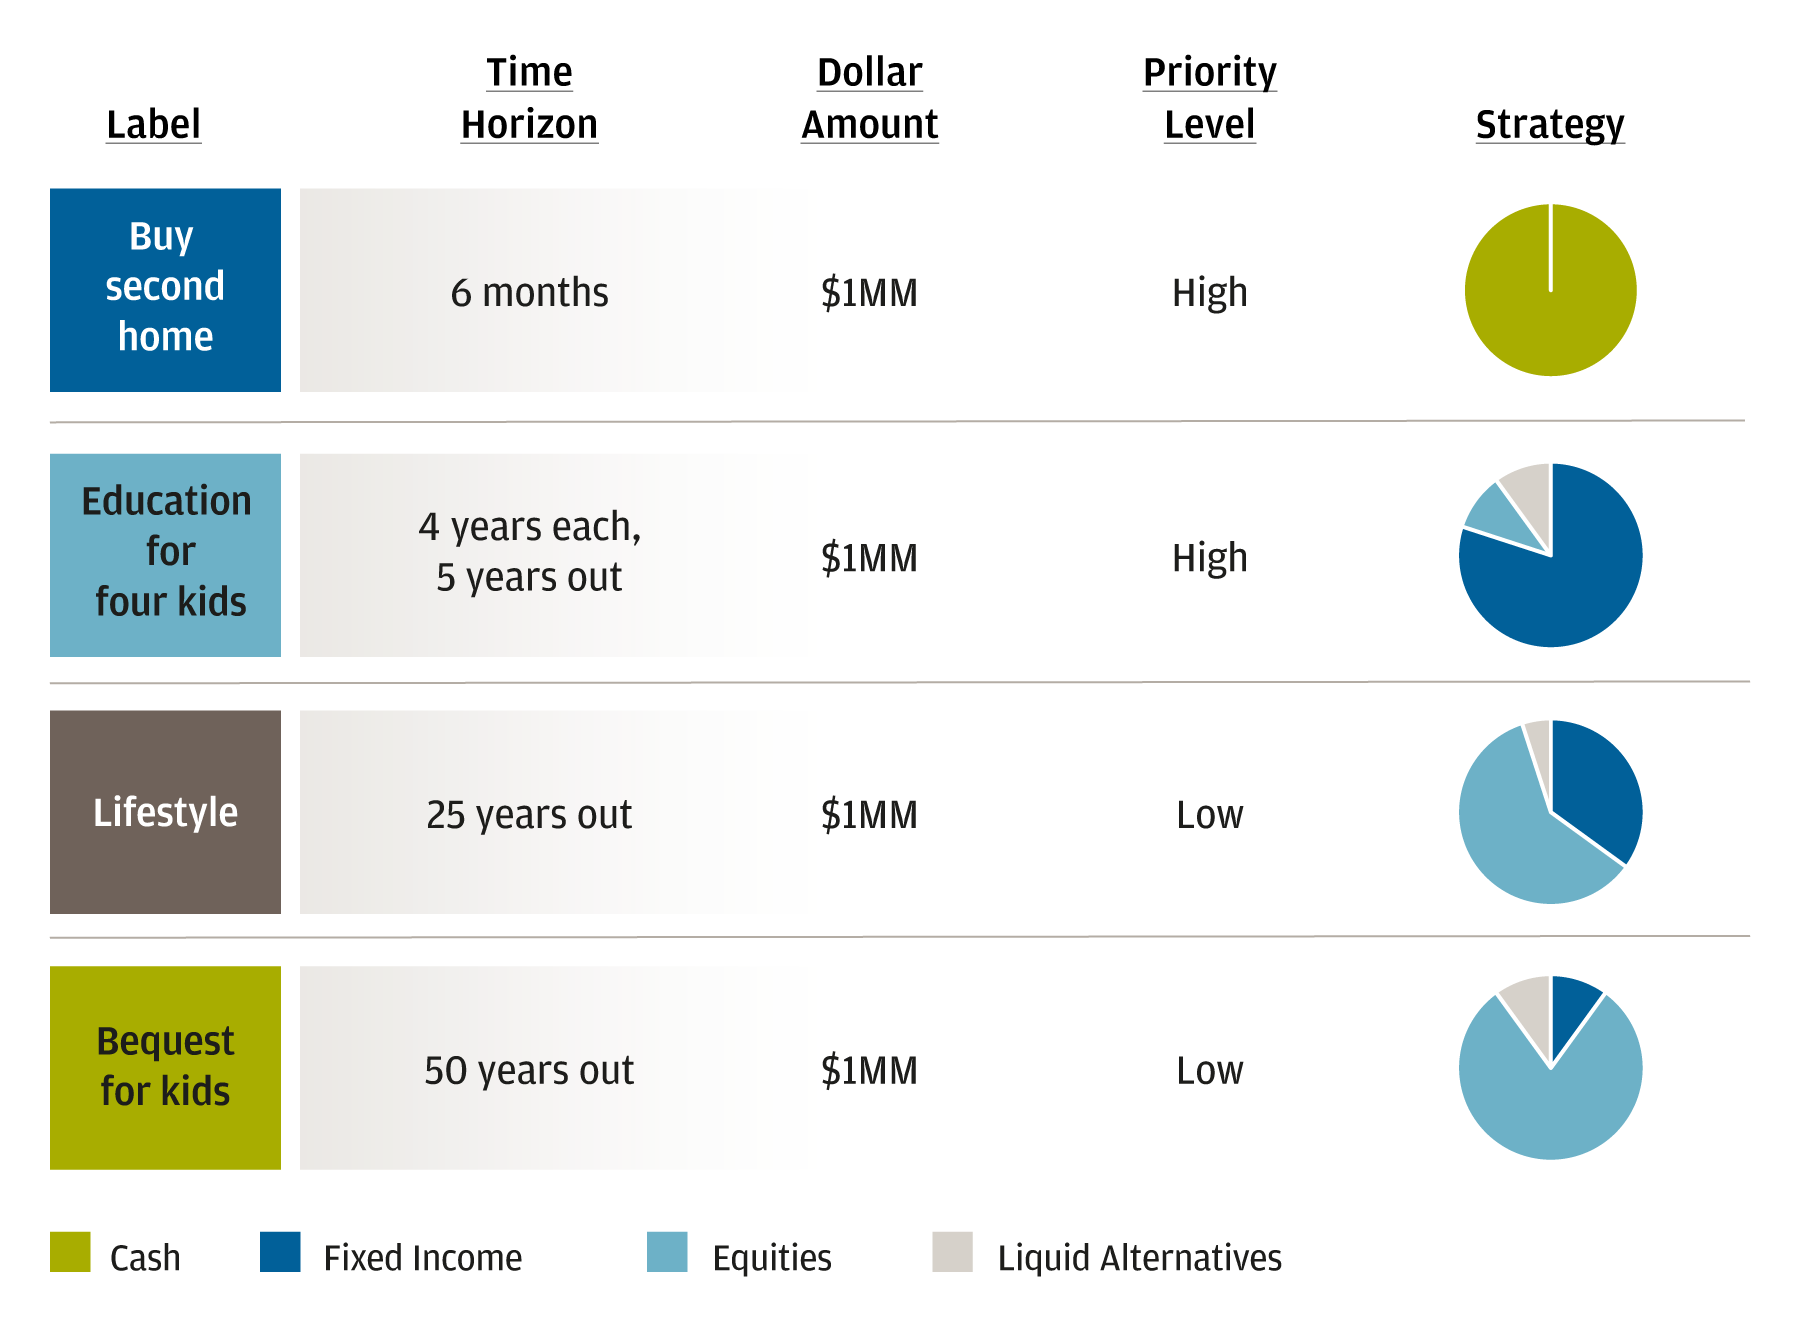 This graphic illustrates four different goals. The first goal is to buy a second home. It has a six-month time horizon, a dollar amount of $1 million, and a high priority level. The allocation used for this goal is 100% cash. The second goal is to provide education for four kids. It has a five-year time horizon with four-years for each kid, a dollar amount of $1 million, and a high priority level. The allocation used for this goal is 80% fixed income, 10% equities, and 10% liquid alternatives. The third goal is to provide for lifestyle. It has a time horizon of 25 years, a dollar amount of $1 million, and a low priority level. The allocation used for this goal is 60% equities, 30% fixed income, and 10% liquid alternatives. The fourth goal is to provide a bequest for kids. It has a time horizon of 50 years, a dollar amount of $1 million, and a low priority level. The allocation used for this goal is 80% equities, 10% liquid alternatives, and 10% fixed income.